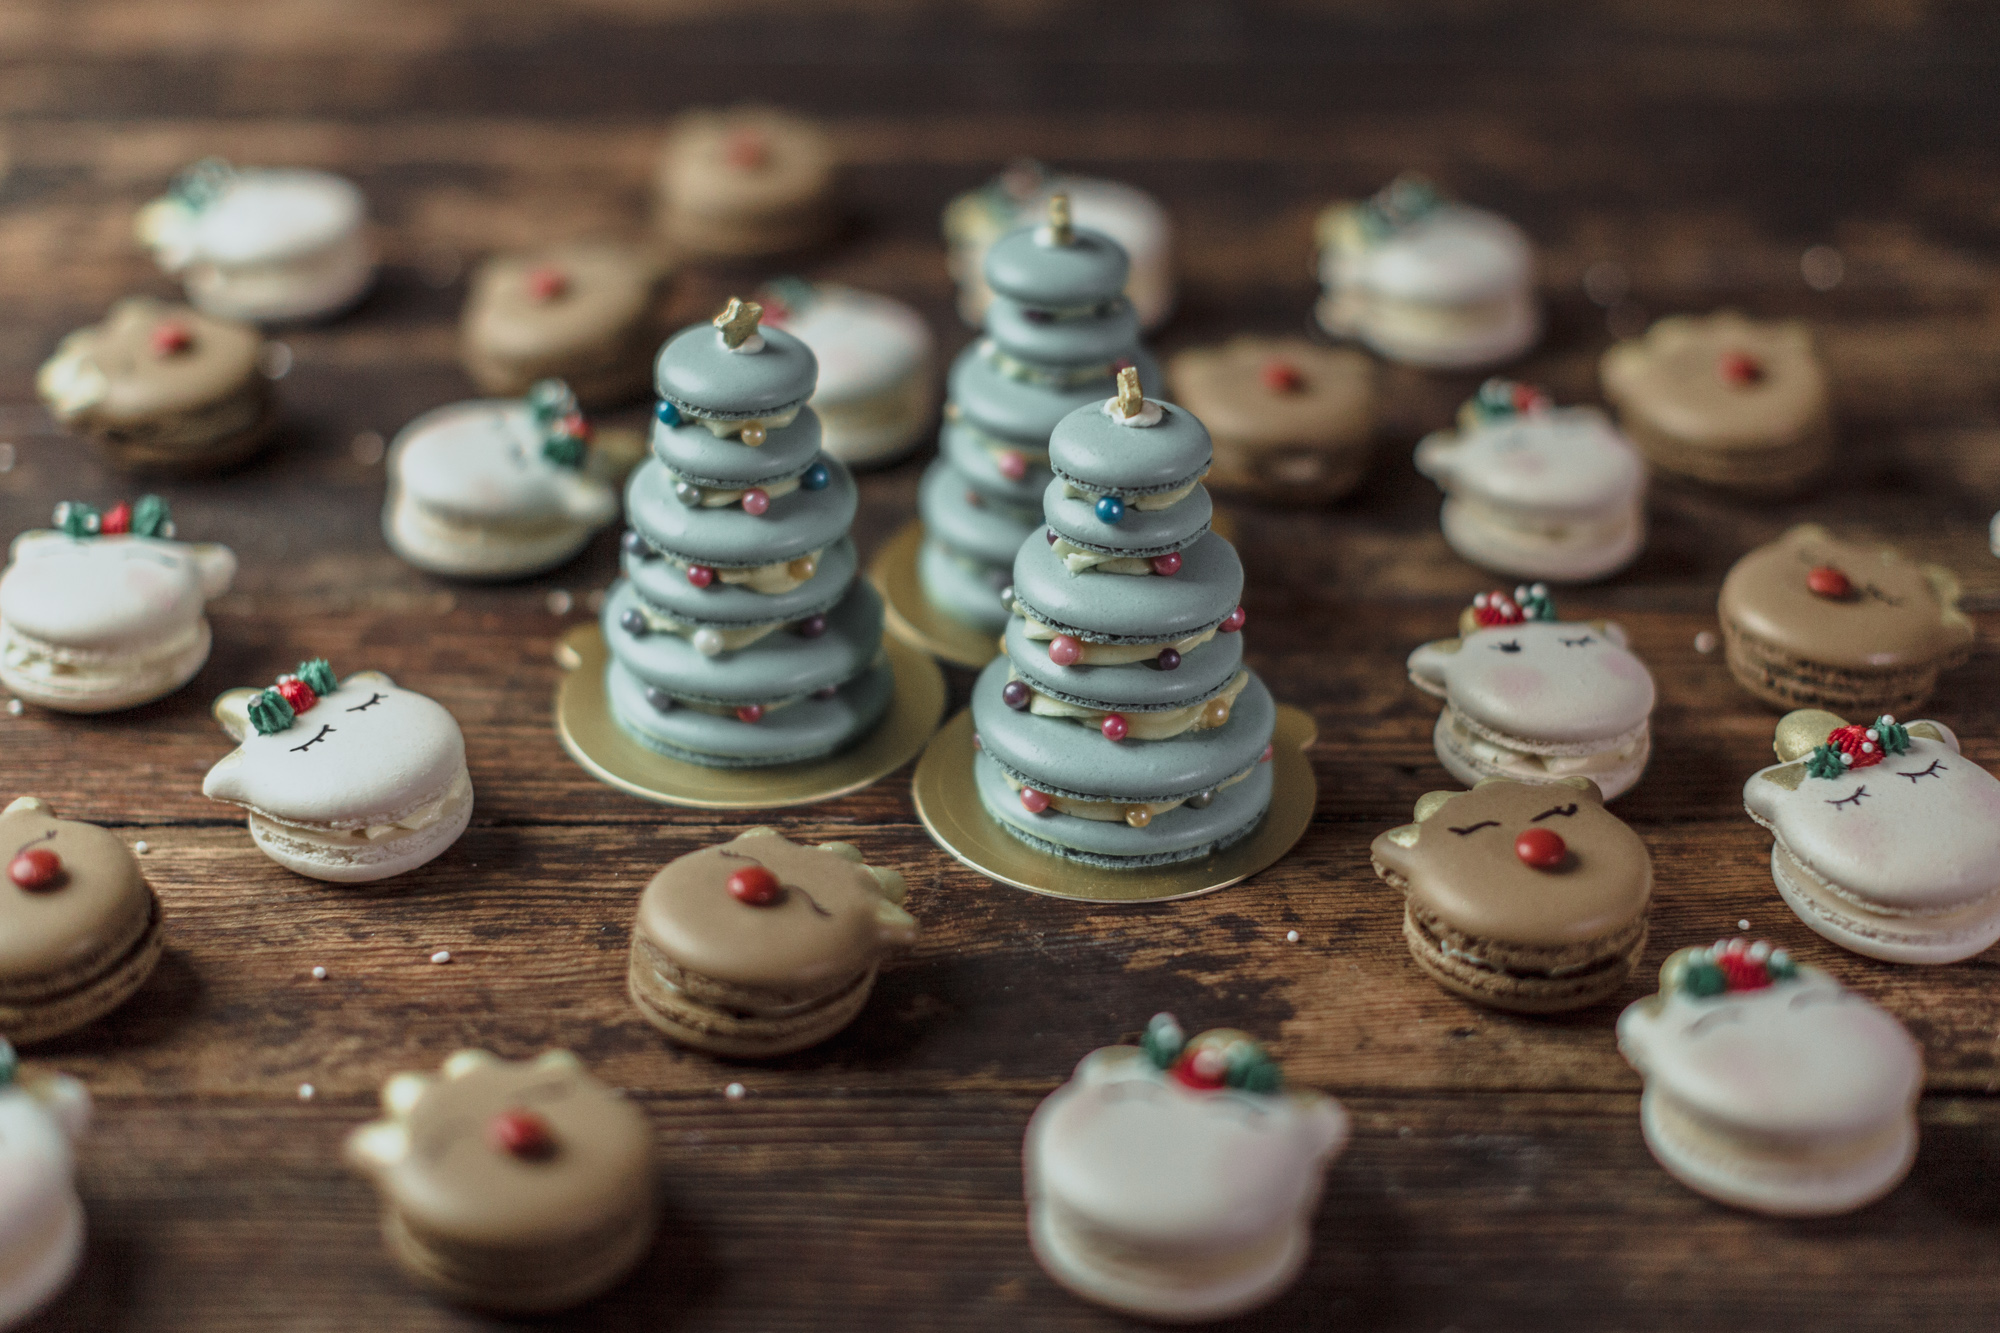 From basic macaron to spectacular Christmas characters